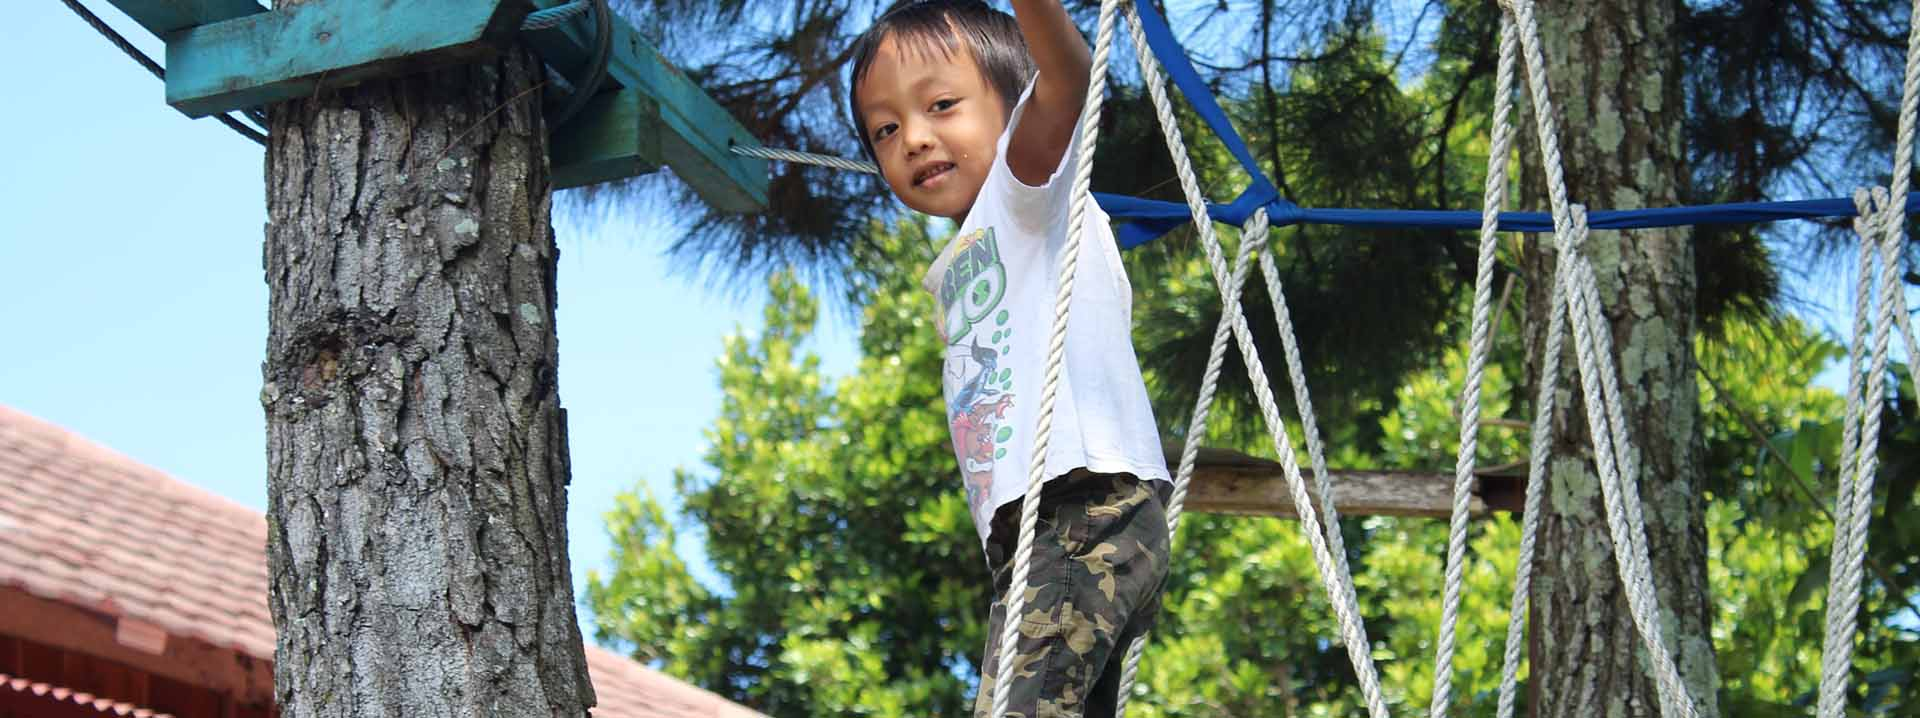 How to Start Day Care DNA Maintain and Grow a Healthy Vibrant Children/'s Daycare